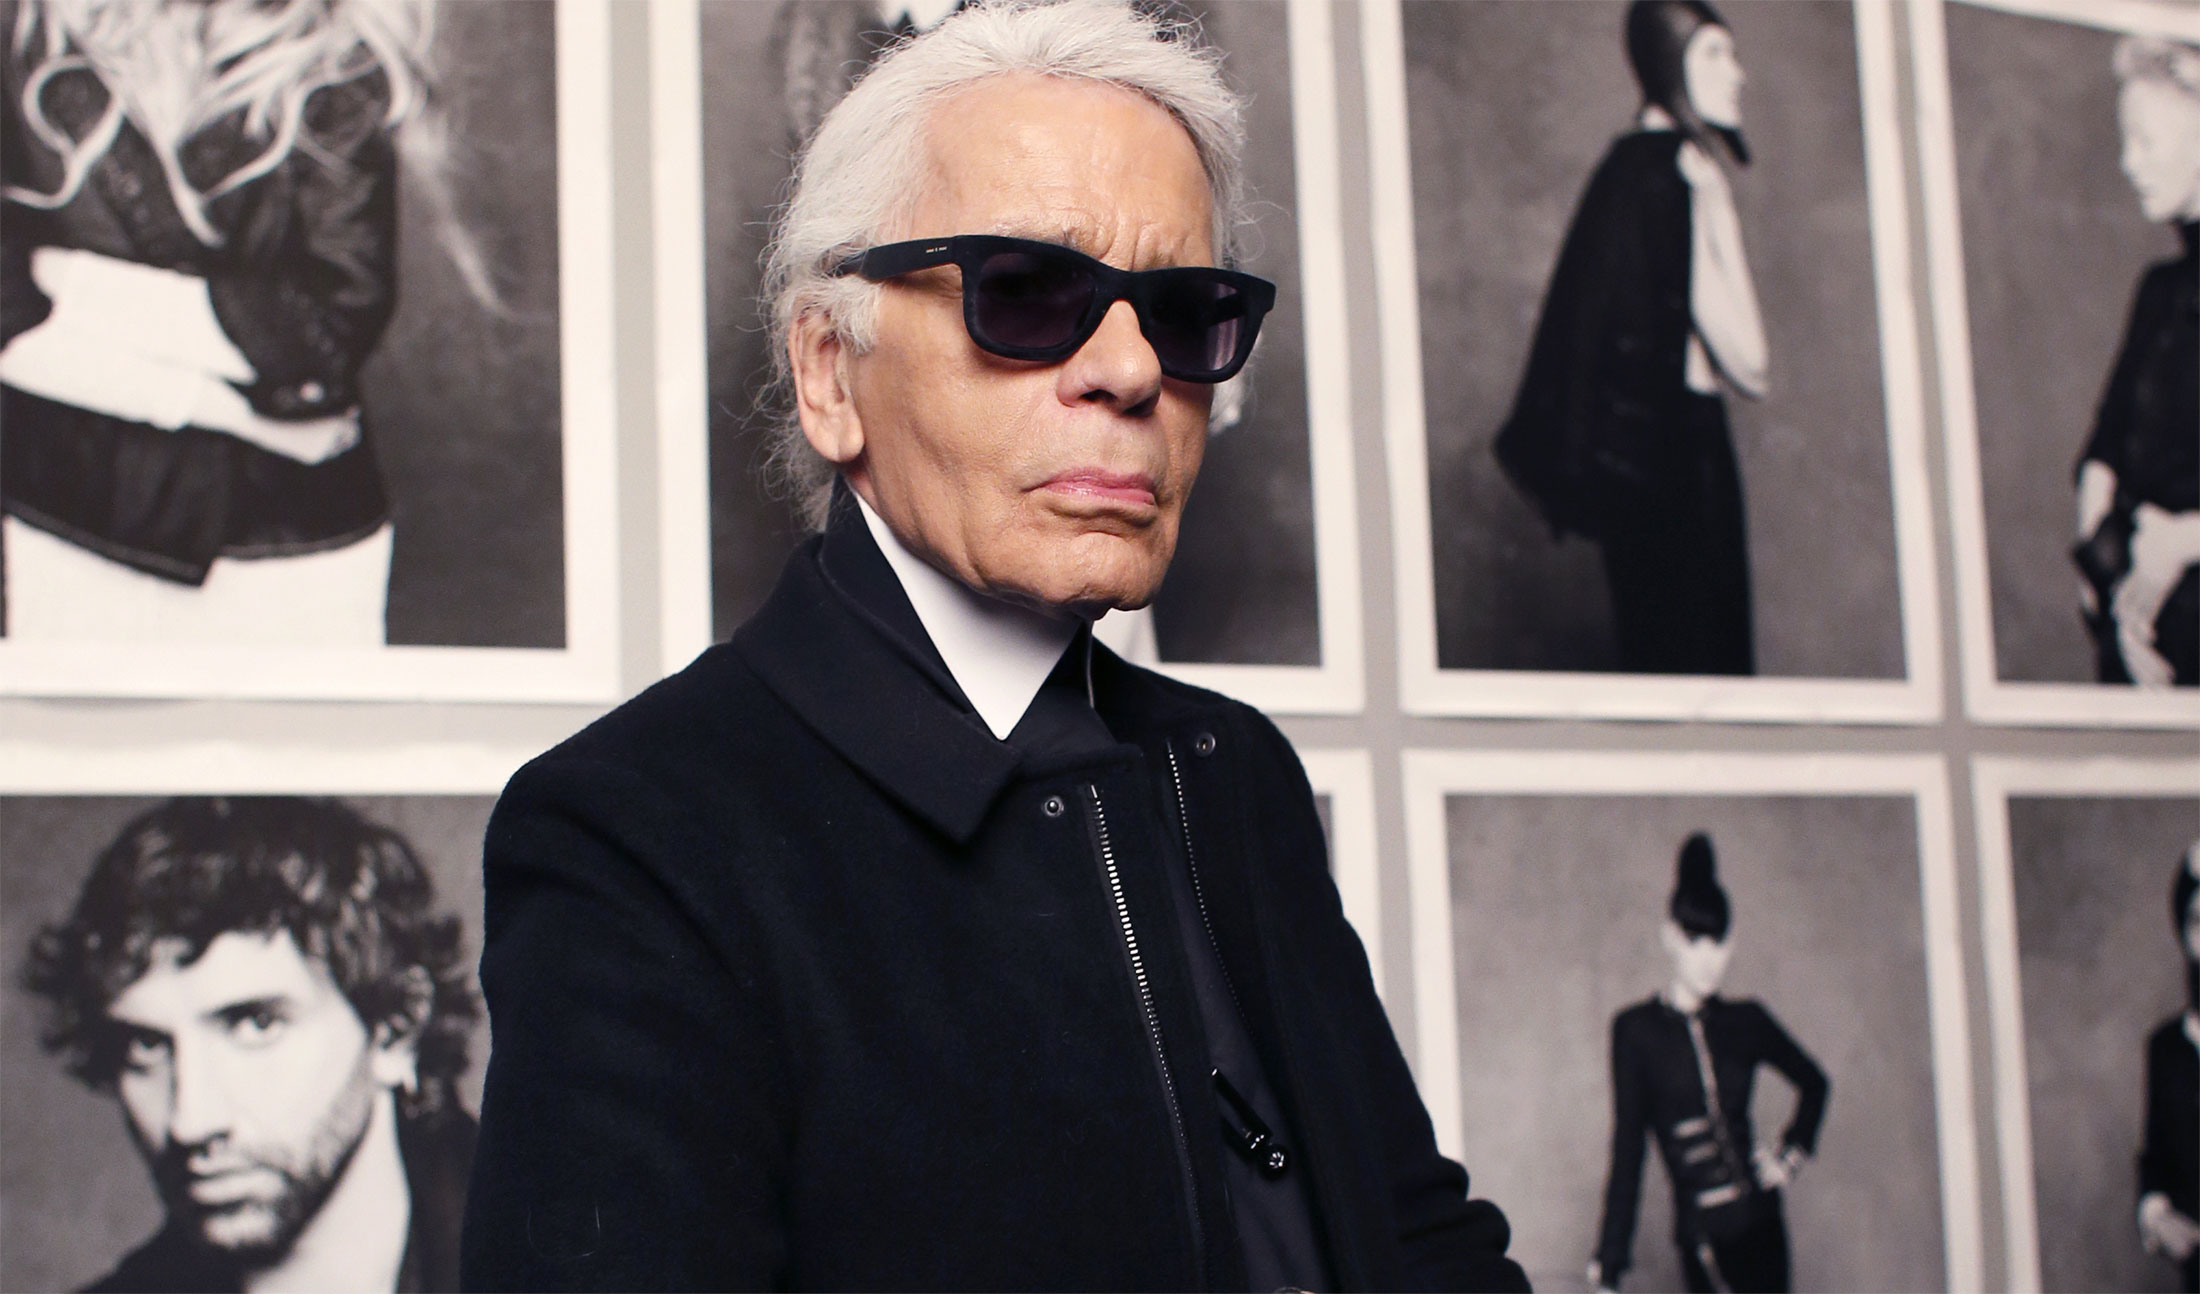 Karl Lagerfeld and Carine Roitfeld's choice of city destinations for The Little Black Jacket exhibition tour could signal a change in the axis of fashion